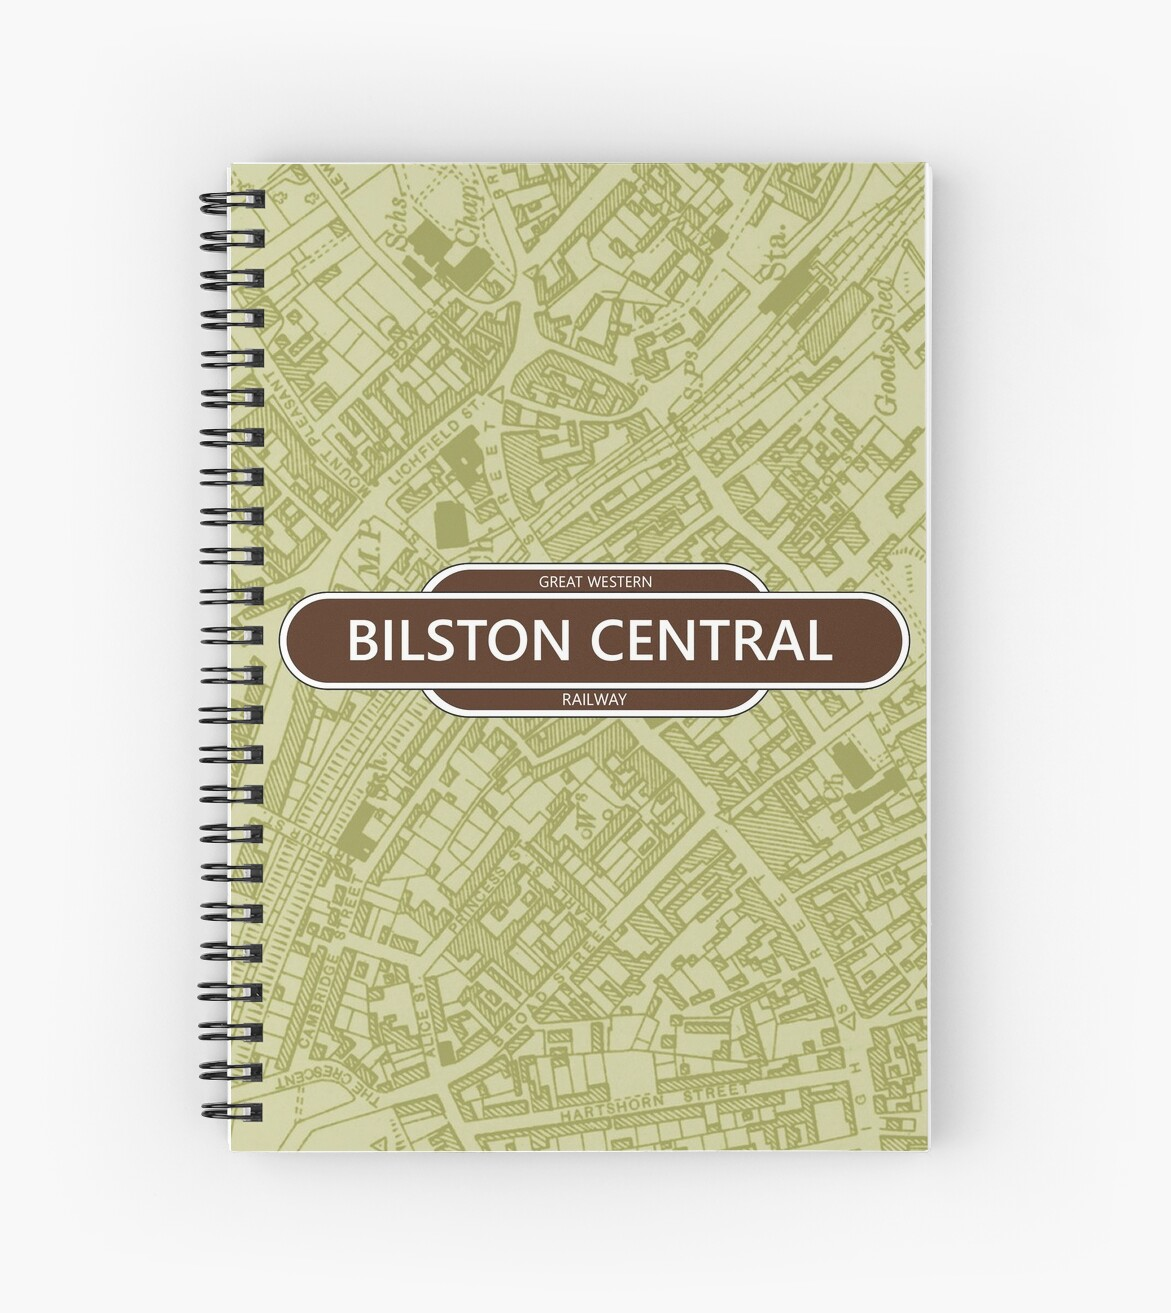 Great Western Railway - Bilston Central by danbadgeruk